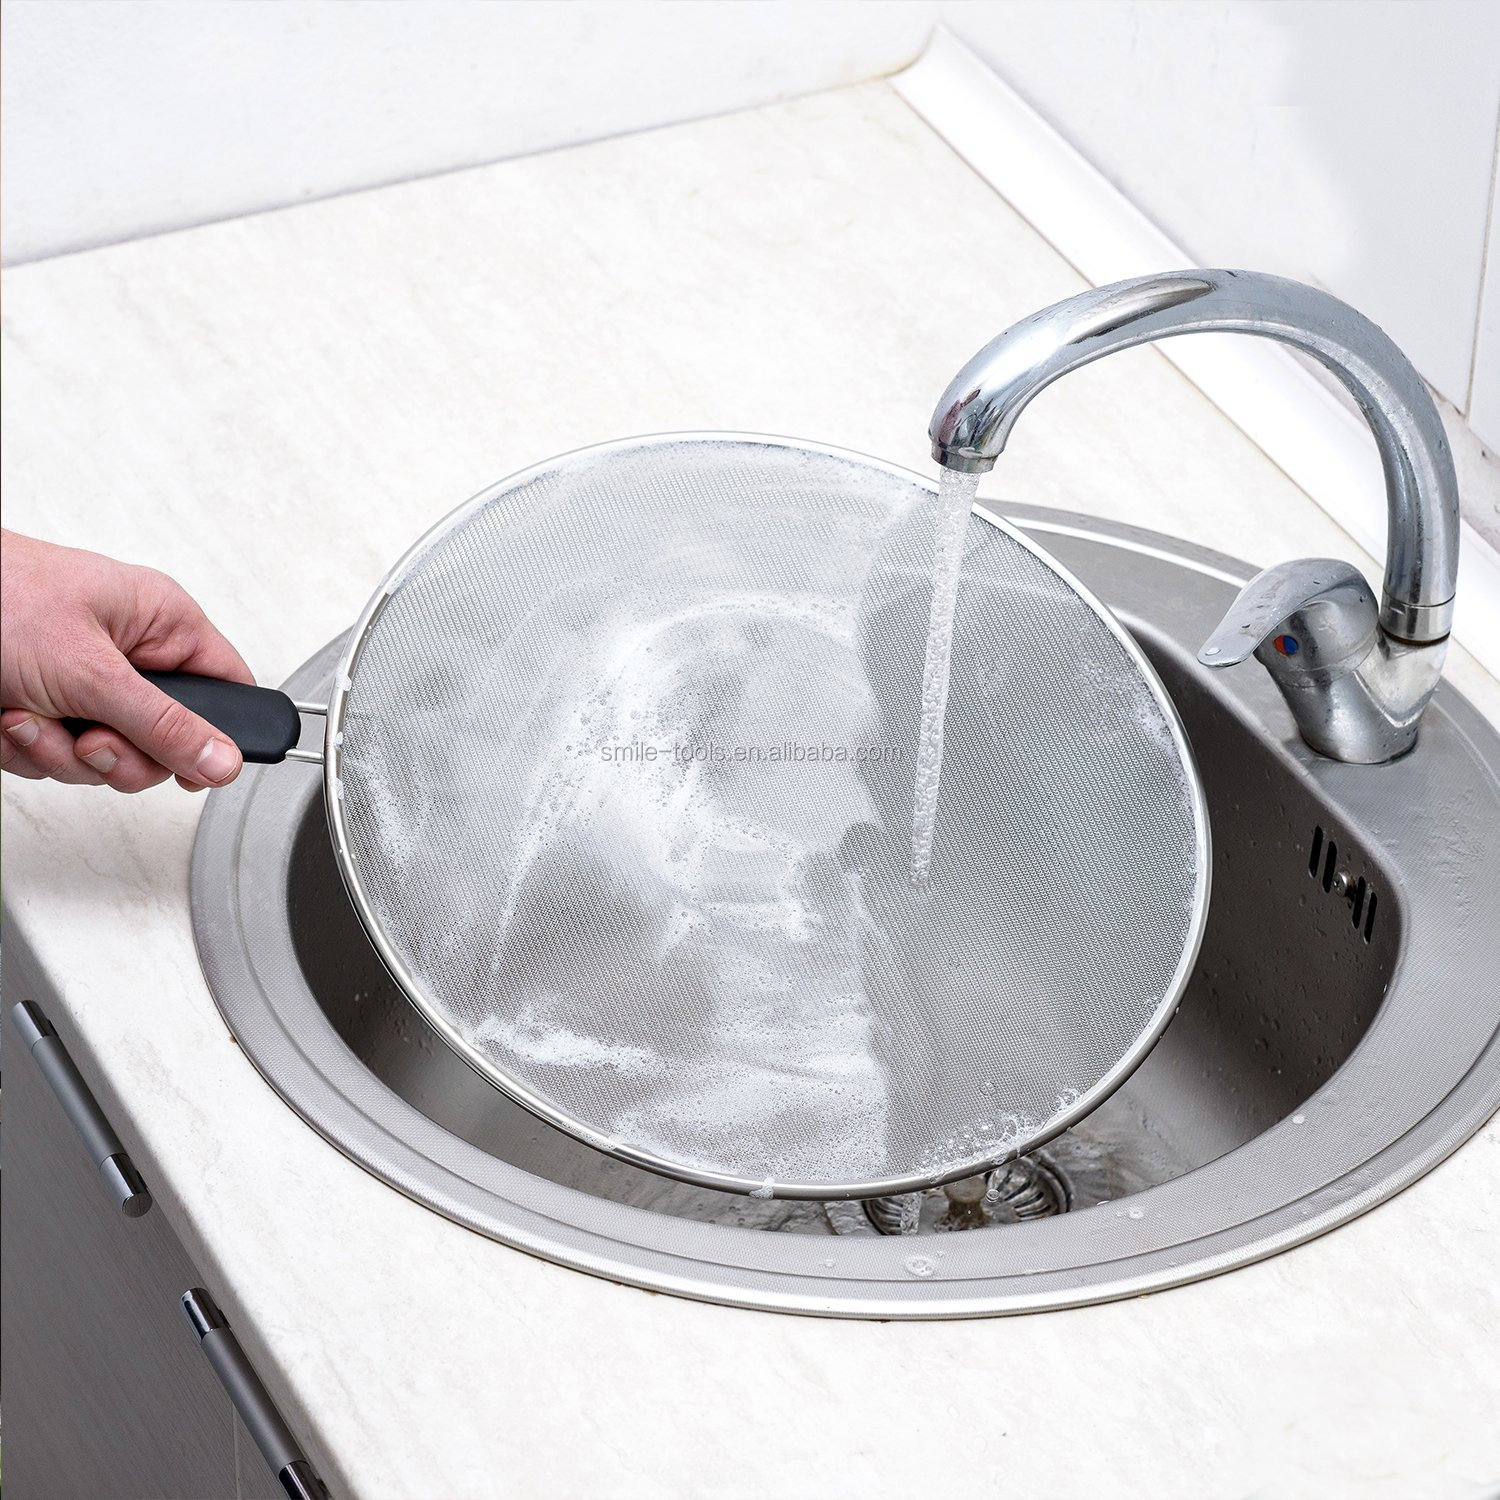 Specialty Tools Splatter Screen Safe Cooking Lid Keeps Kitchen Clean Splatter Guard for Cooking